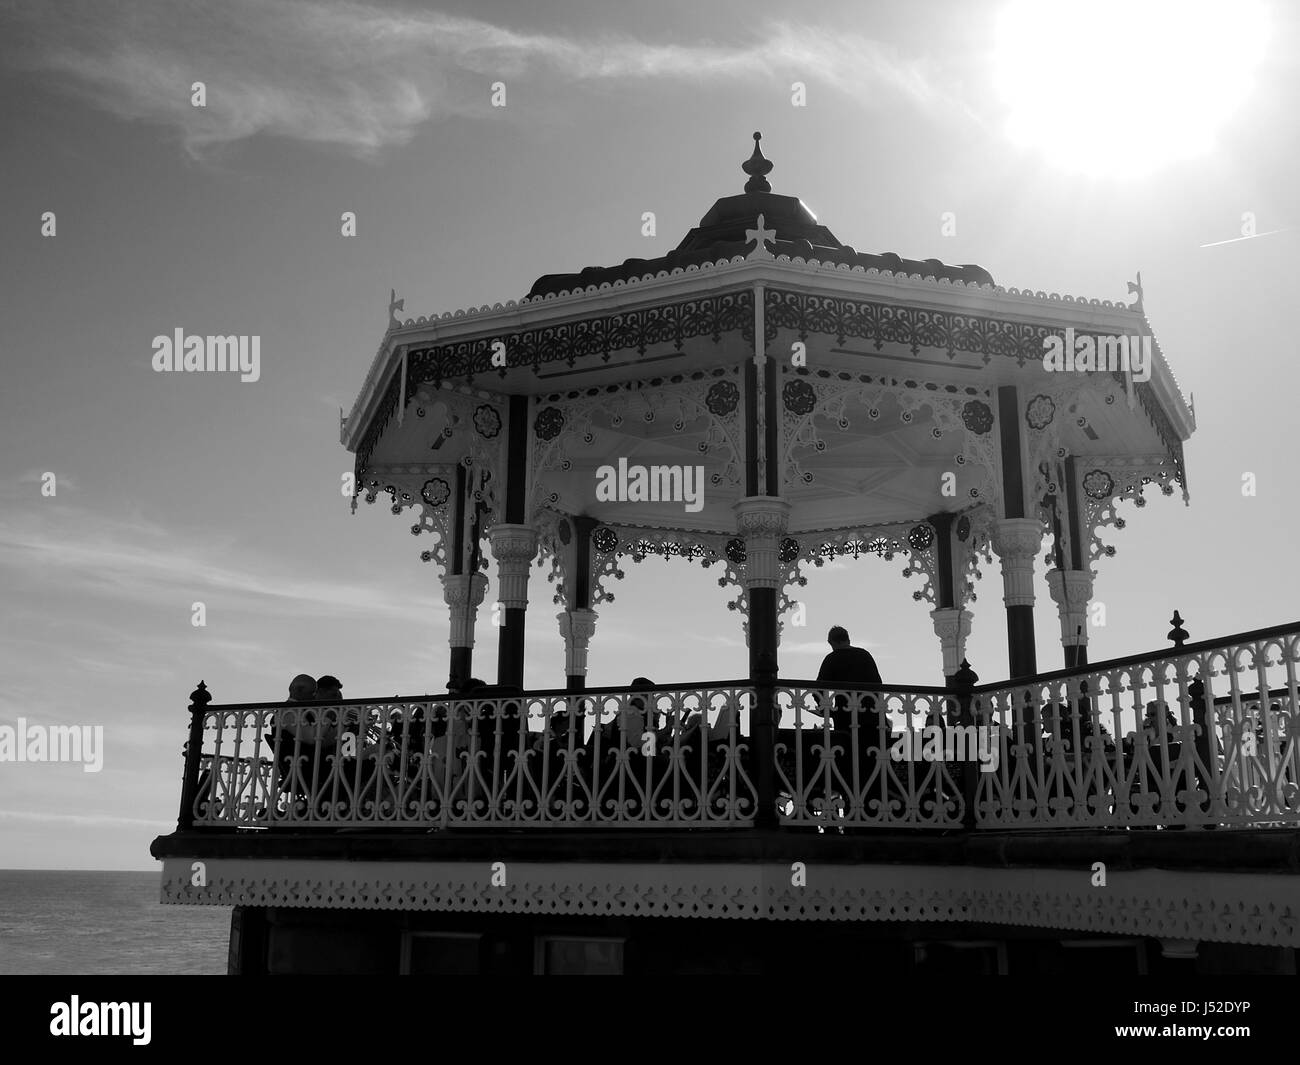 Bandstand on Brighton seafront, in black and white - Stock Image